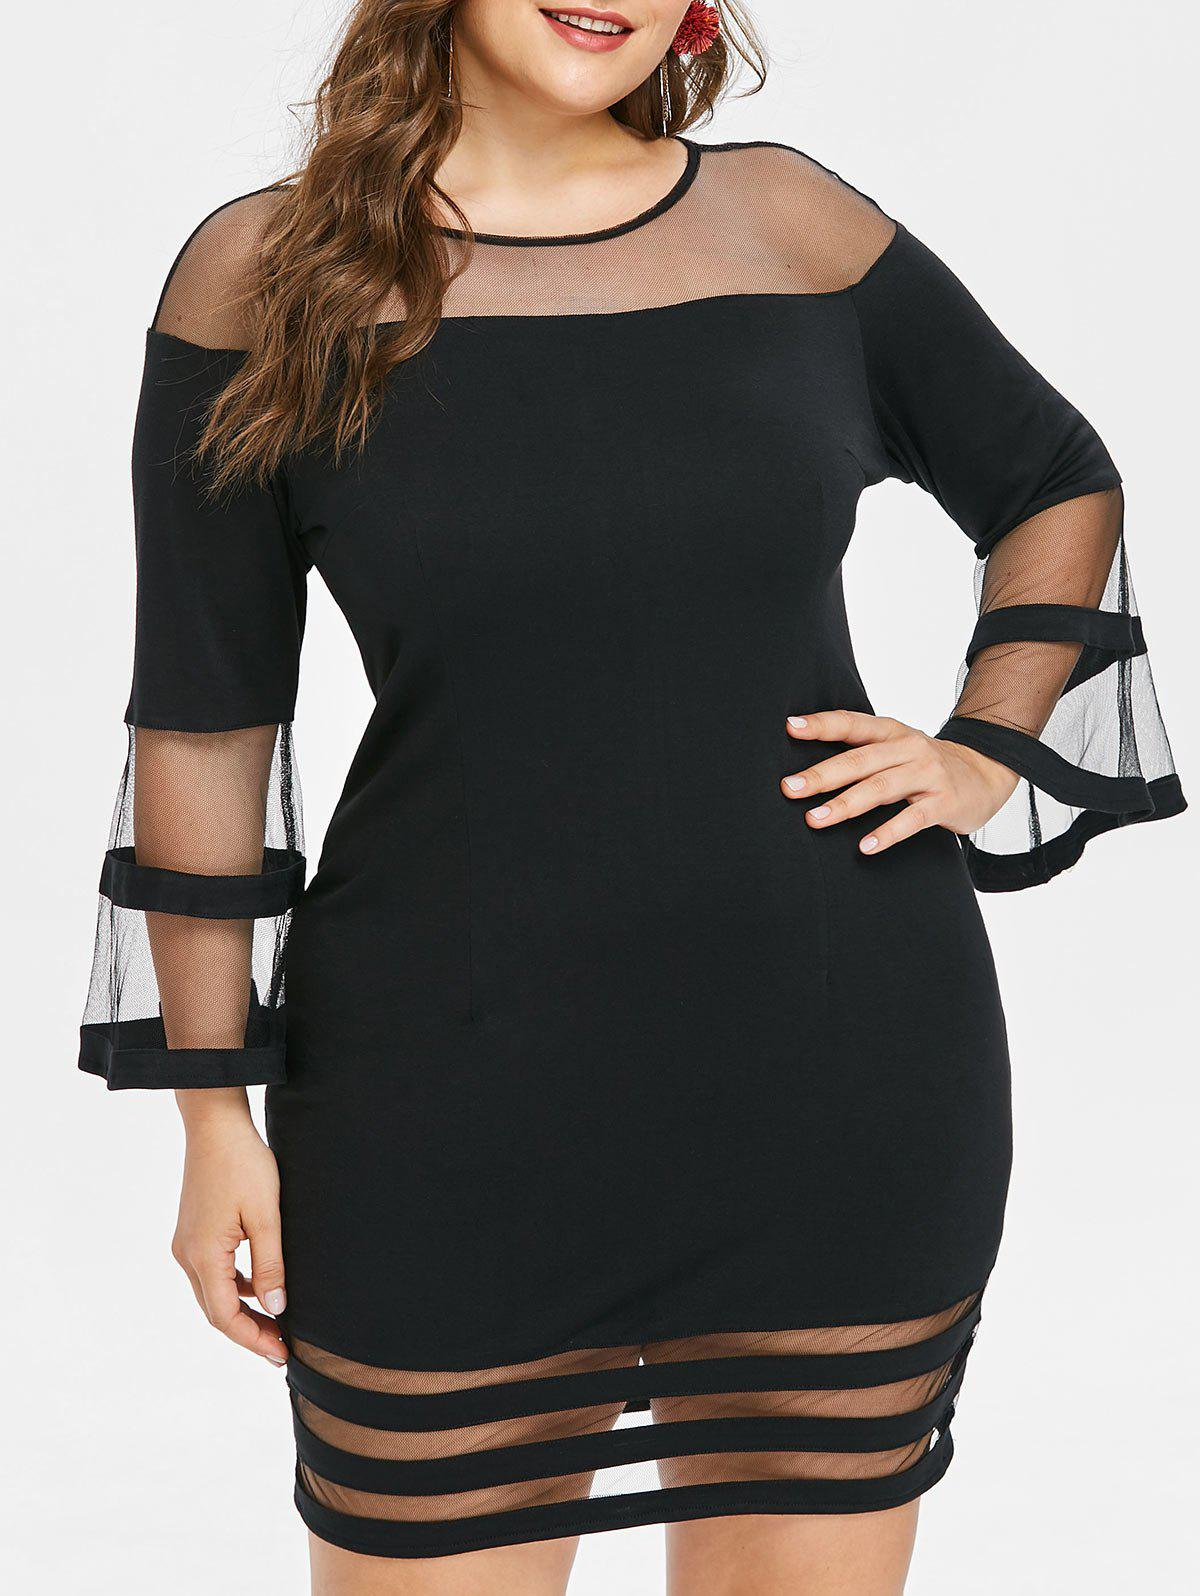 8068174017b5 37% OFF] Plus Size Mesh Insert Bodycon Dress | Rosegal